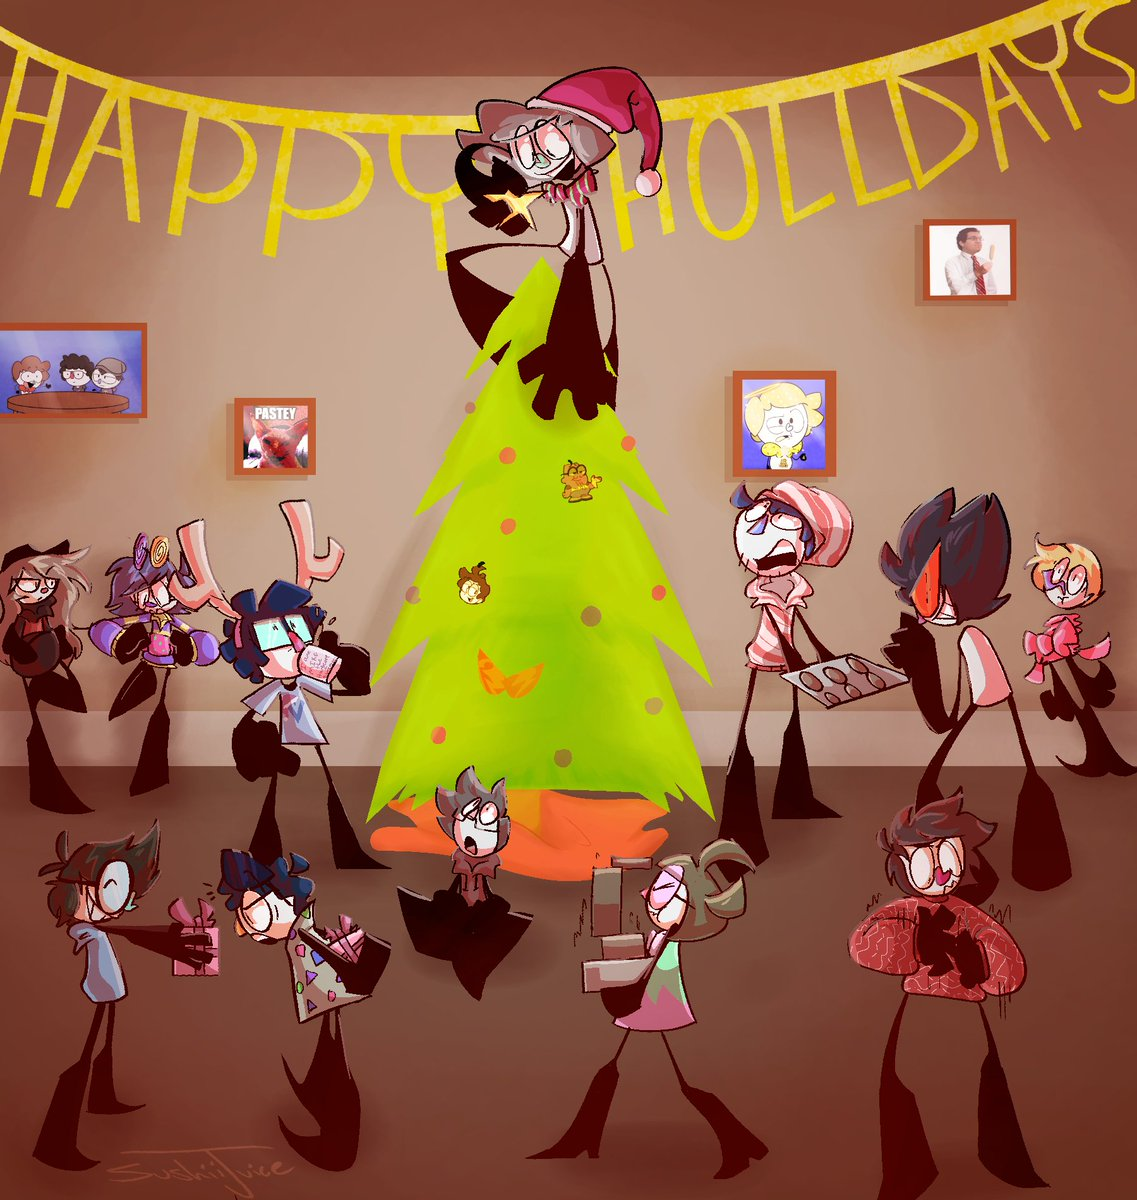 Happy holidays from the DKdiscord <3 this took longer than i thought hgrkghjhg <br>http://pic.twitter.com/5grwfdS1Or